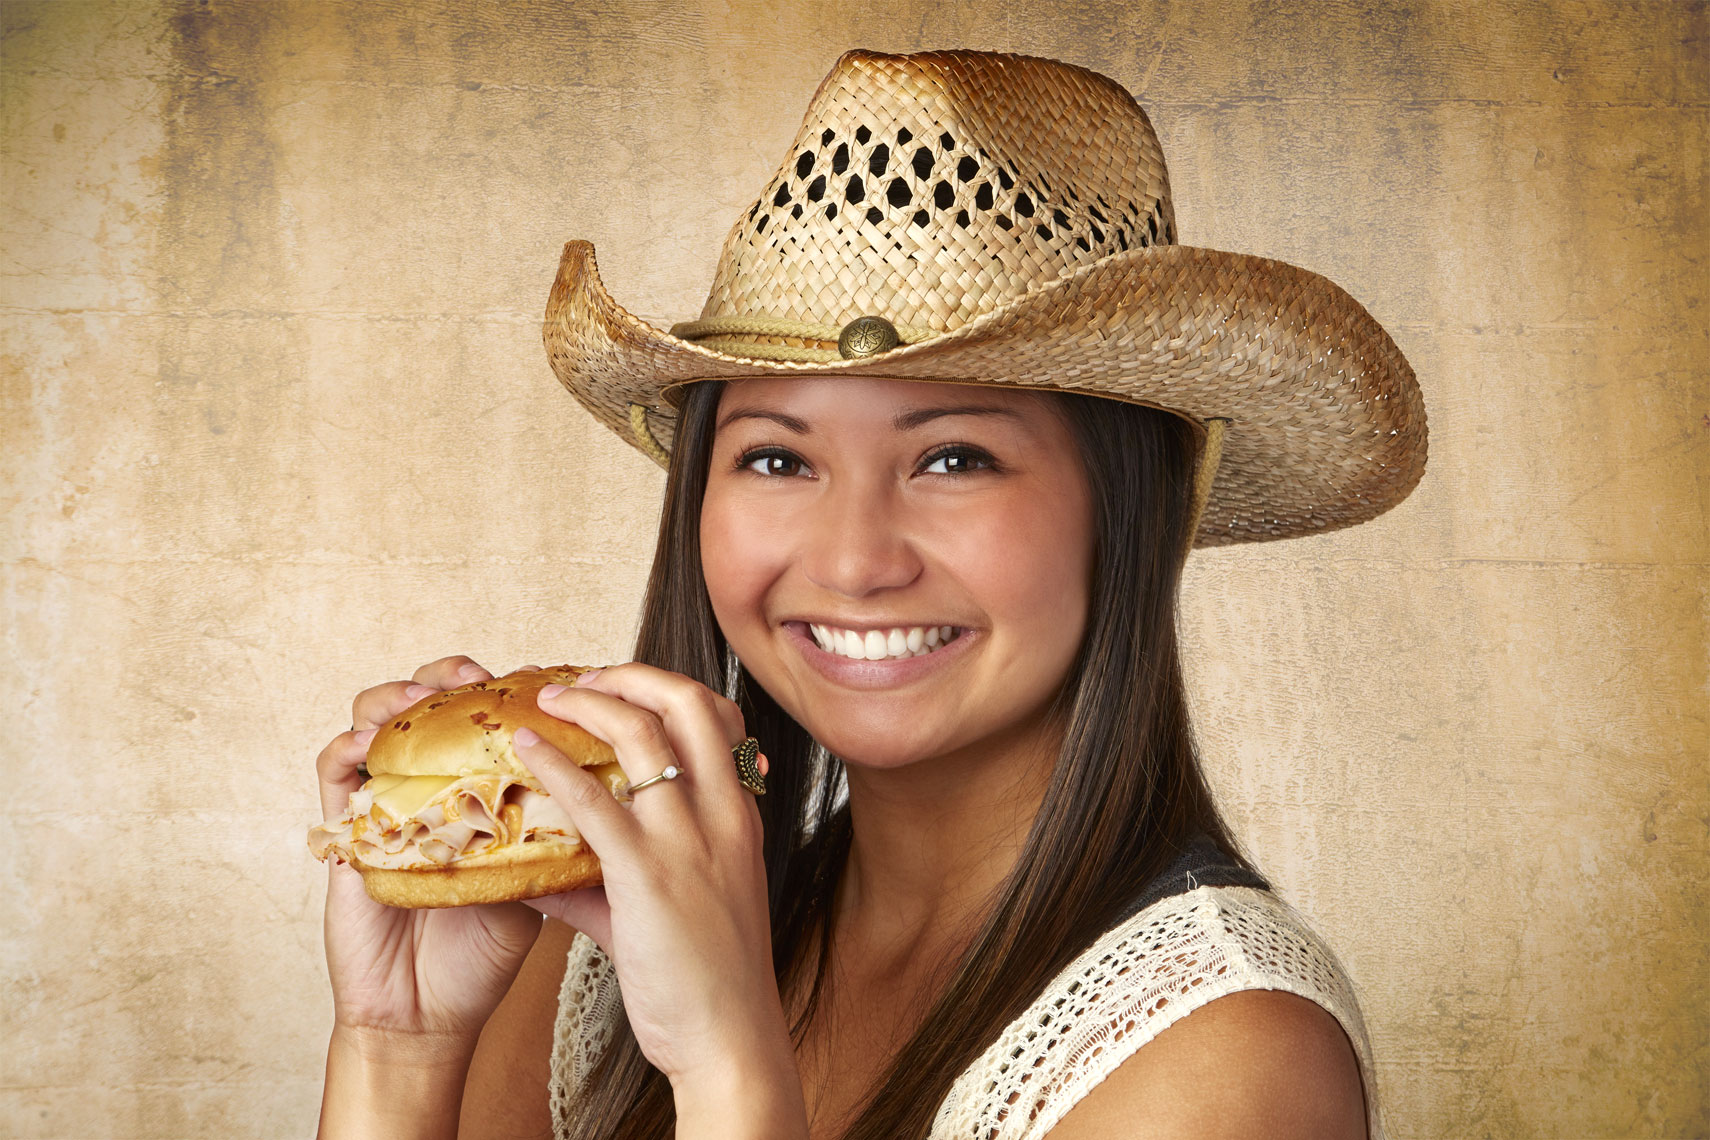 Female model/eating ham & cheese sandwich/lifestyle photo